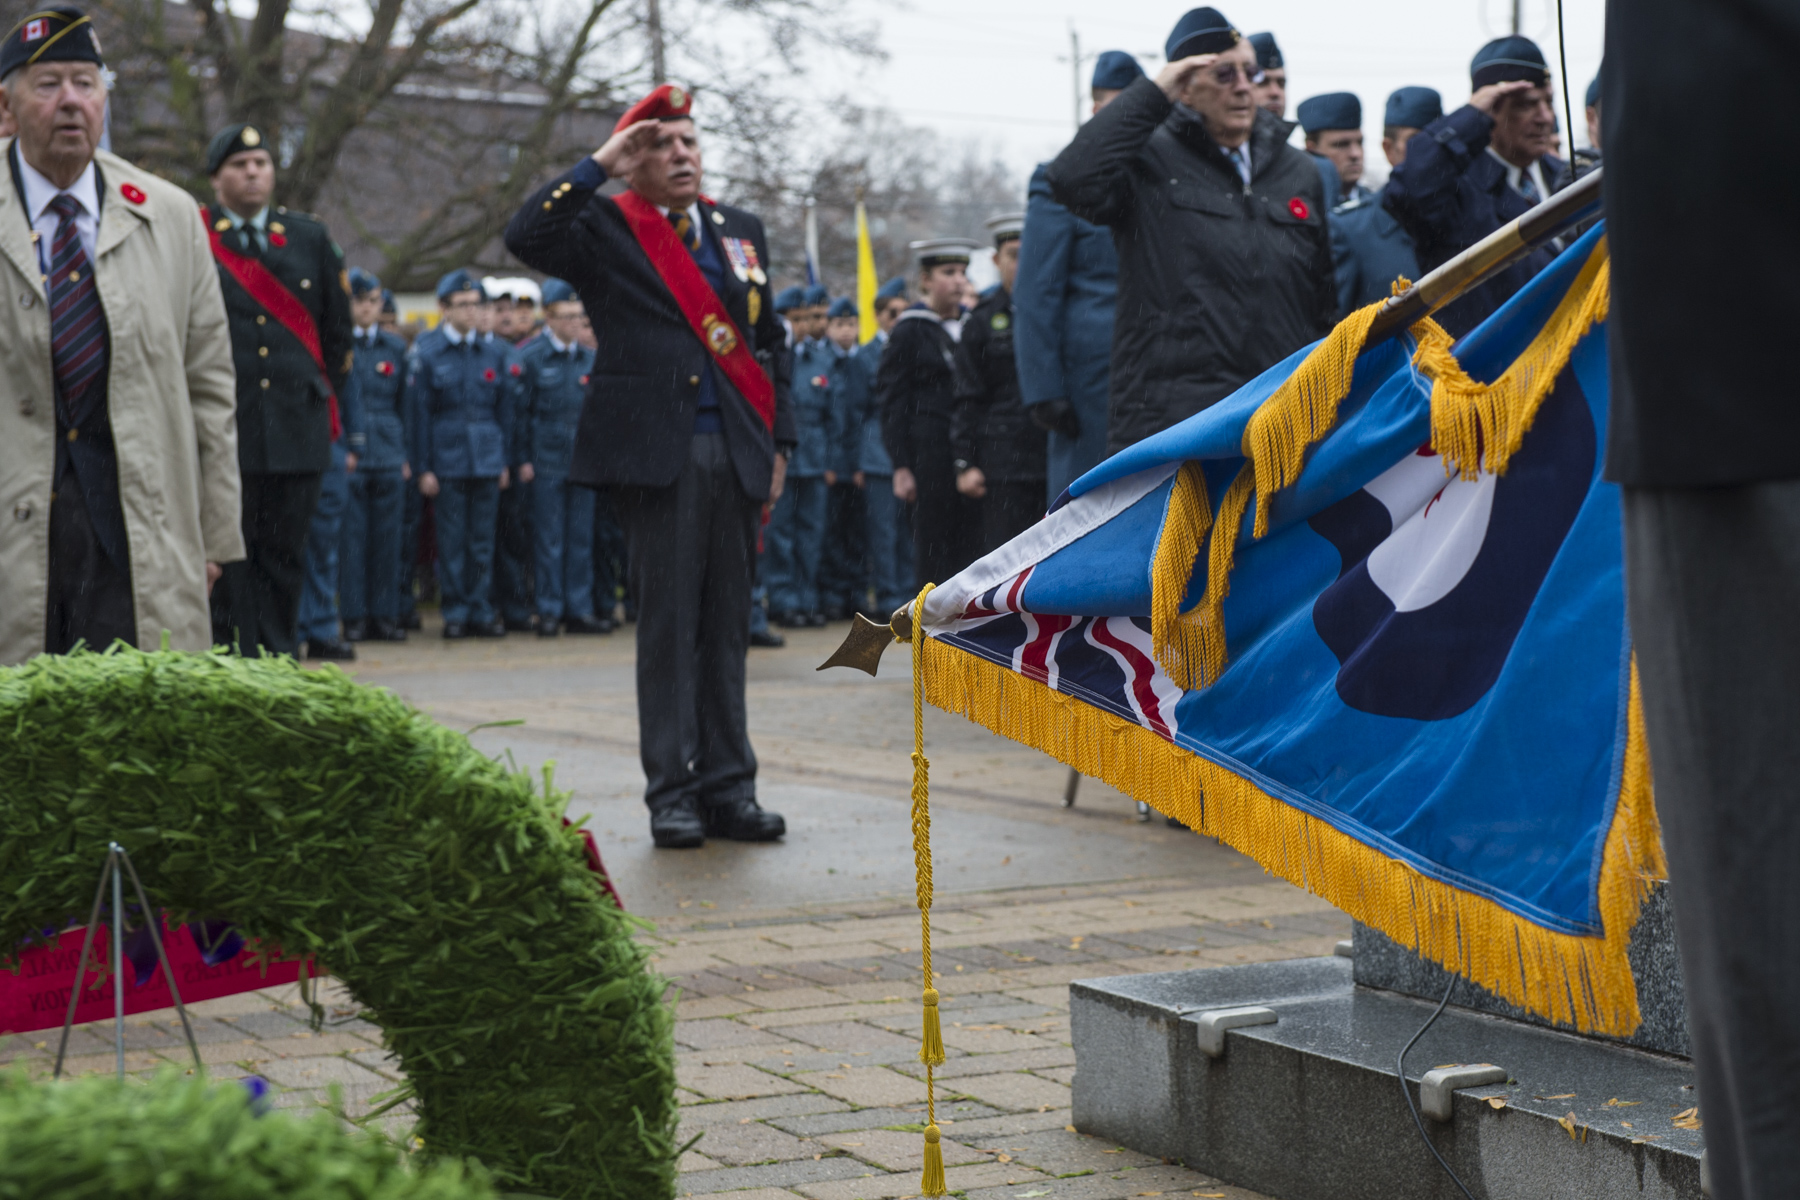 Royal Canadian Air Force  and Canadian Army members, veterans, and Air Force and Navy cadets participate in the Remembrance Day ceremony in Belleville, Ontario, on November 11, 2015. PHOTO: Corporal Ken Beliwicz